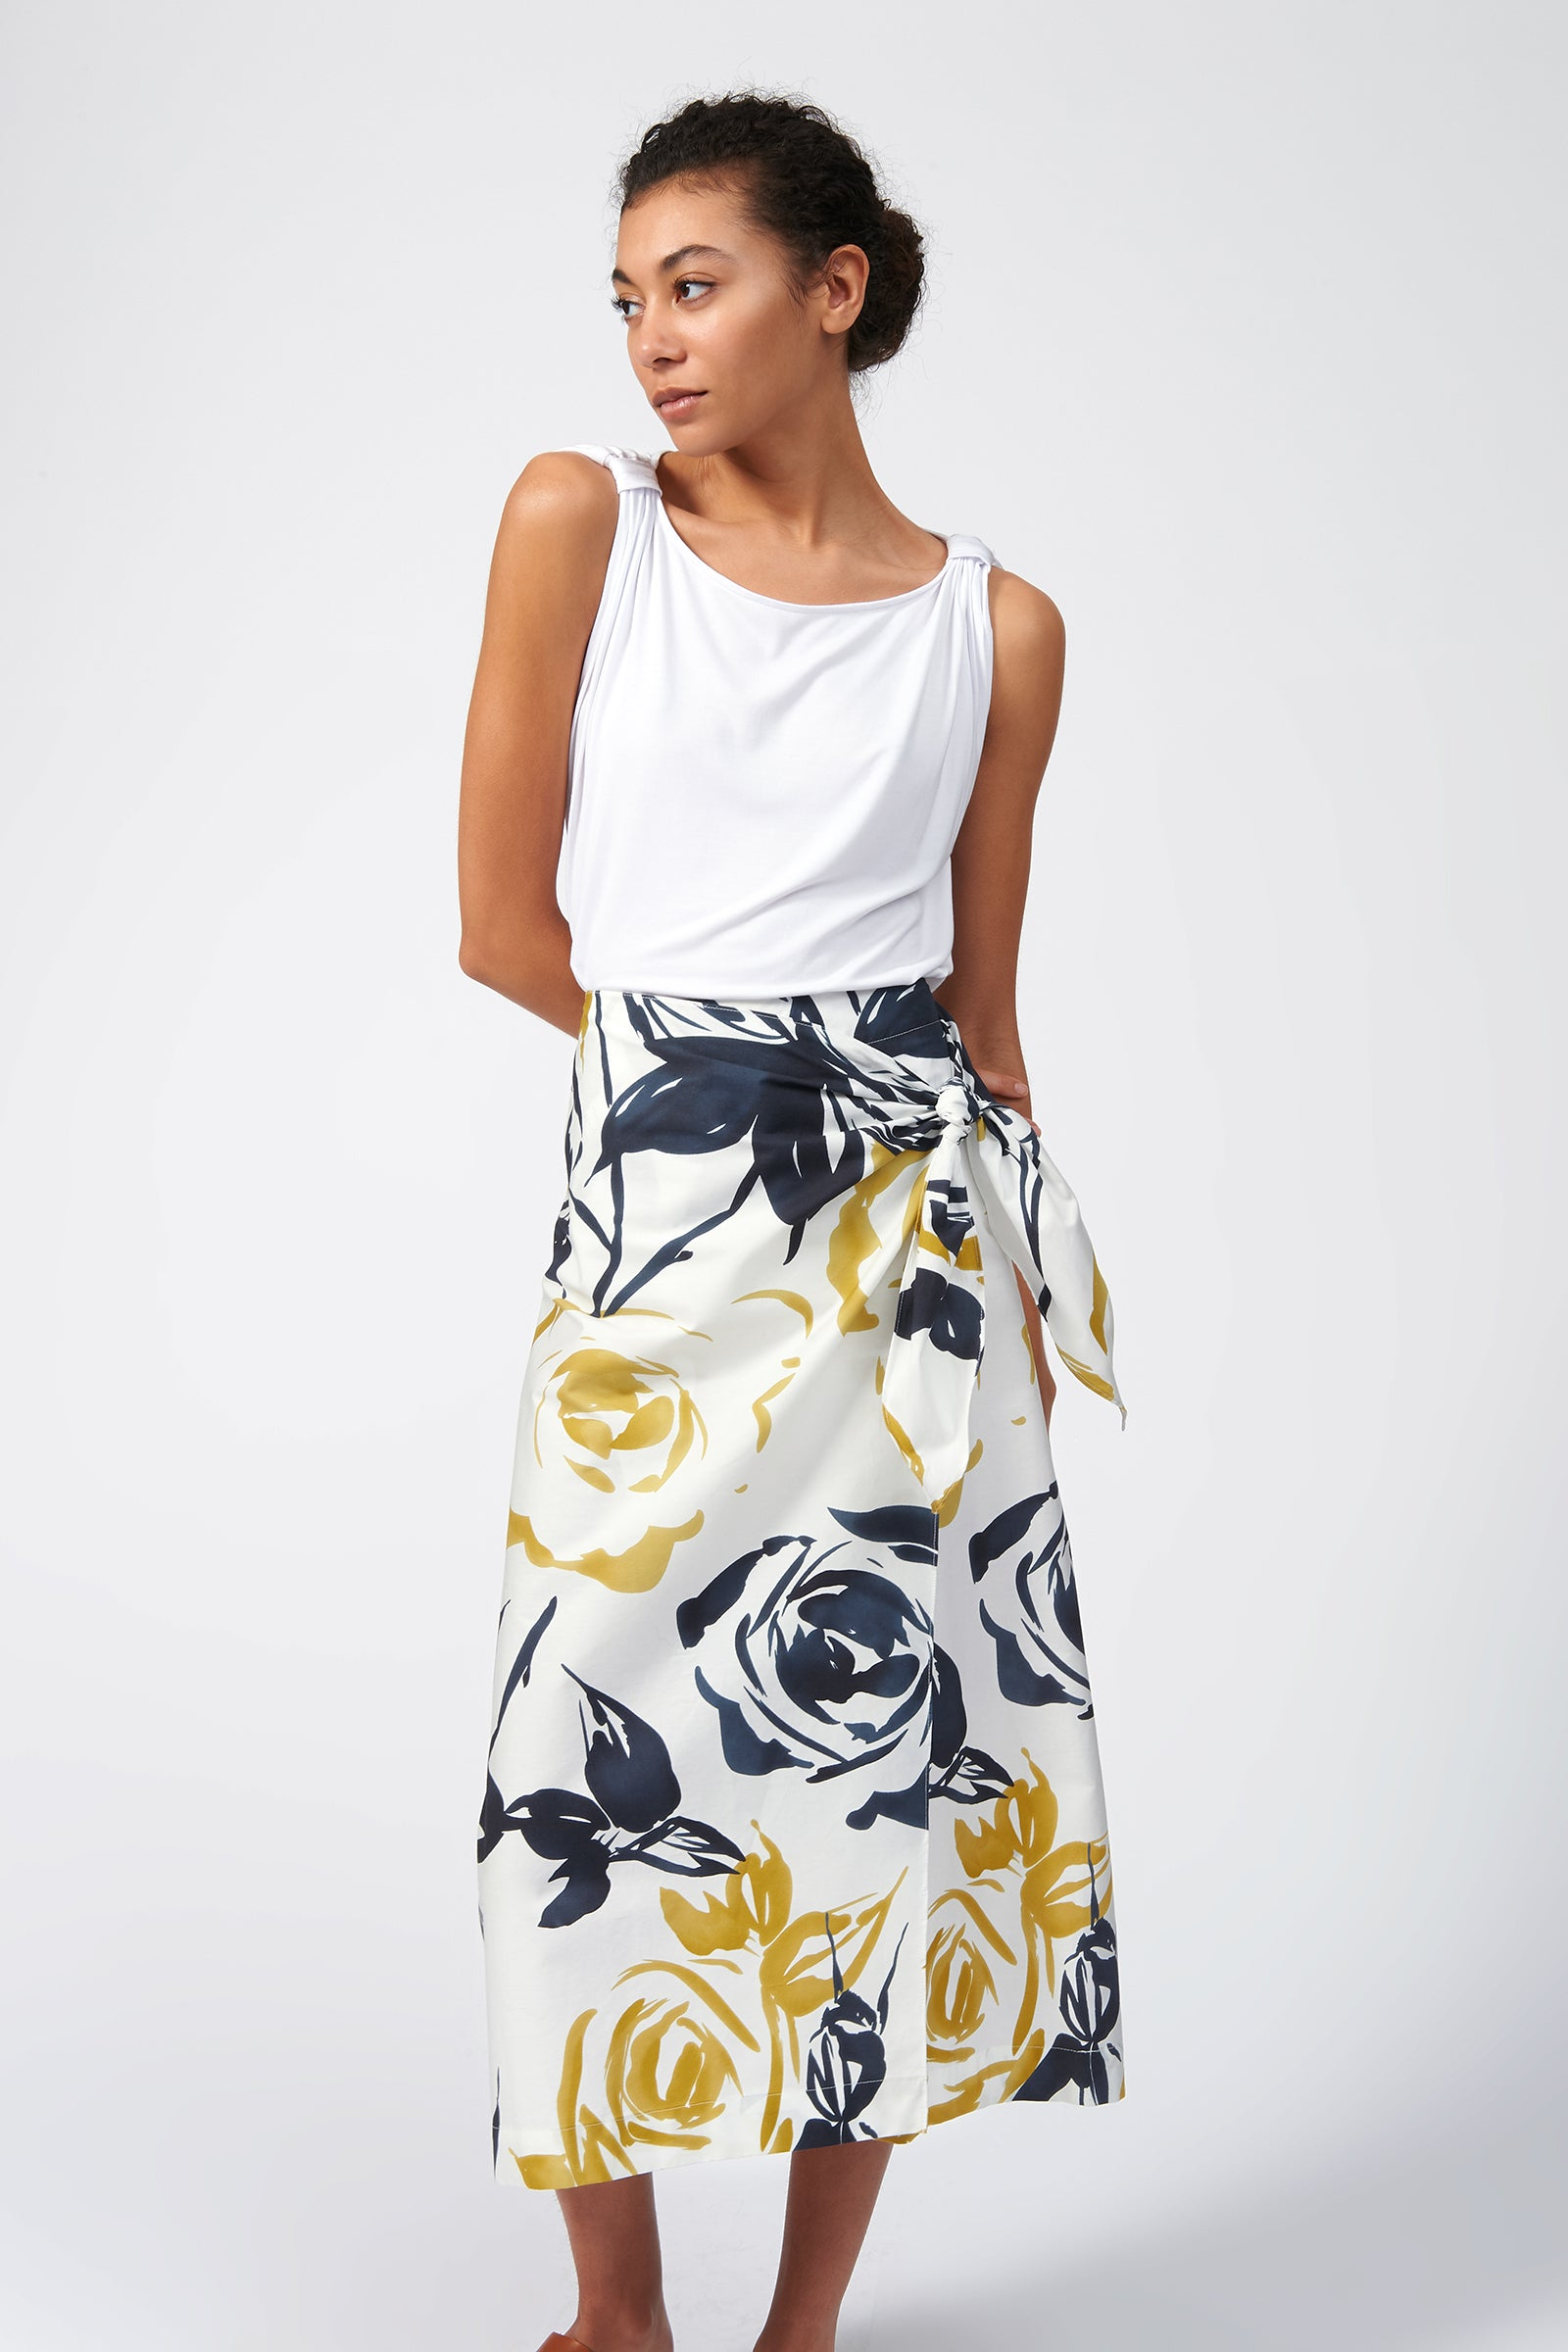 Kal Rieman Summer Wrap Skirt in Watercolor Floral on Model Full Front View